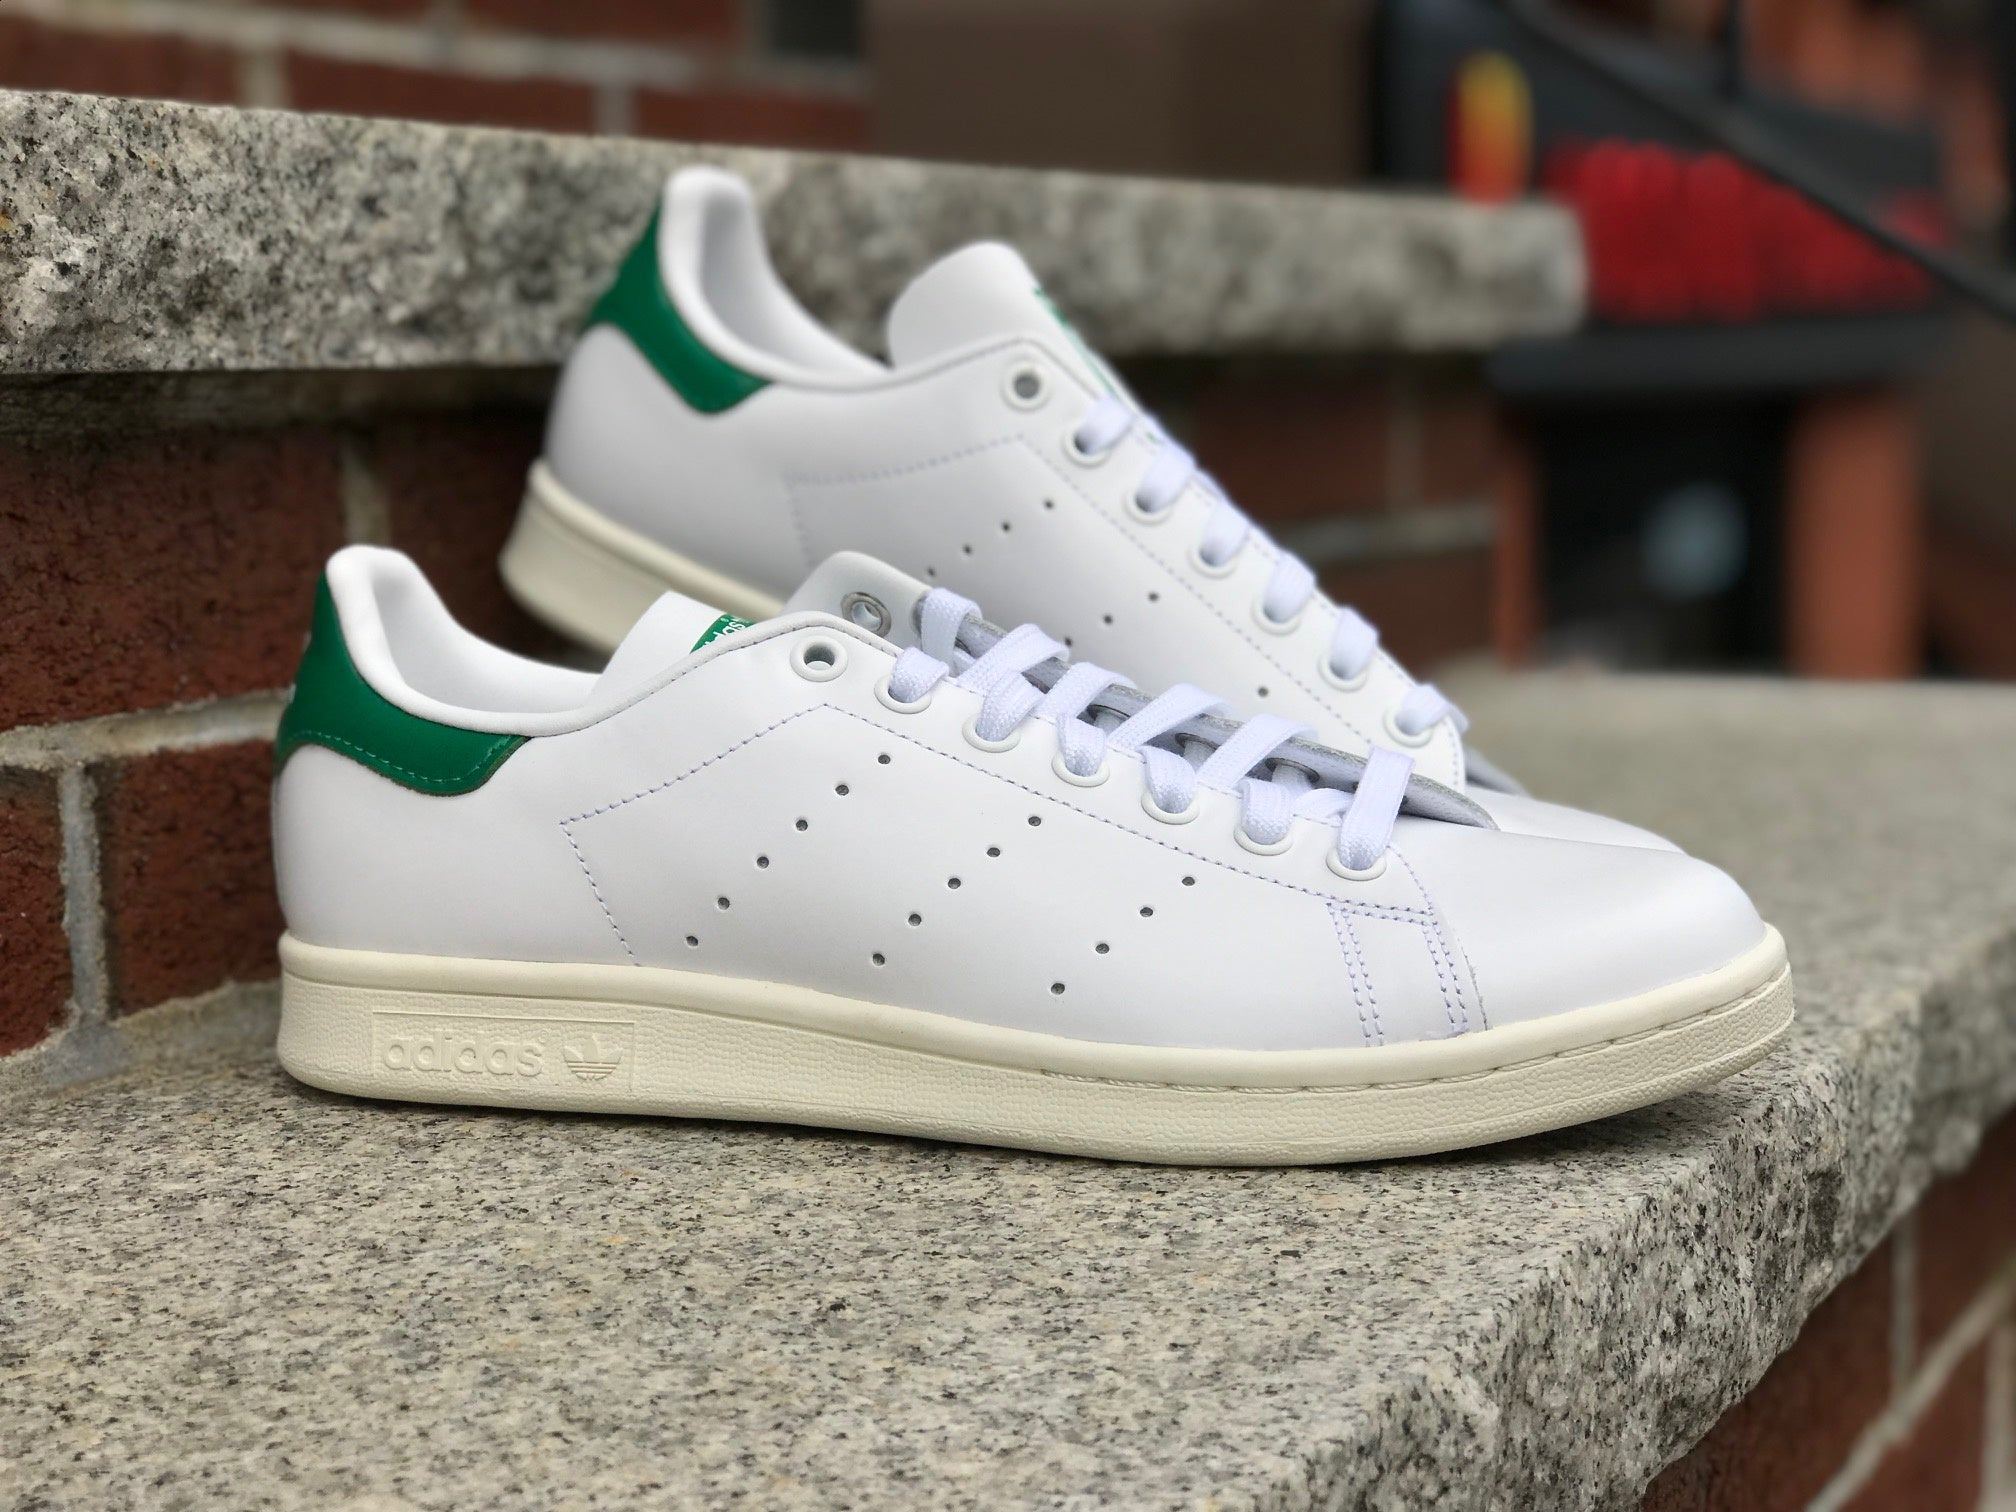 Adidas Stan Smith White Off White Green BD7432